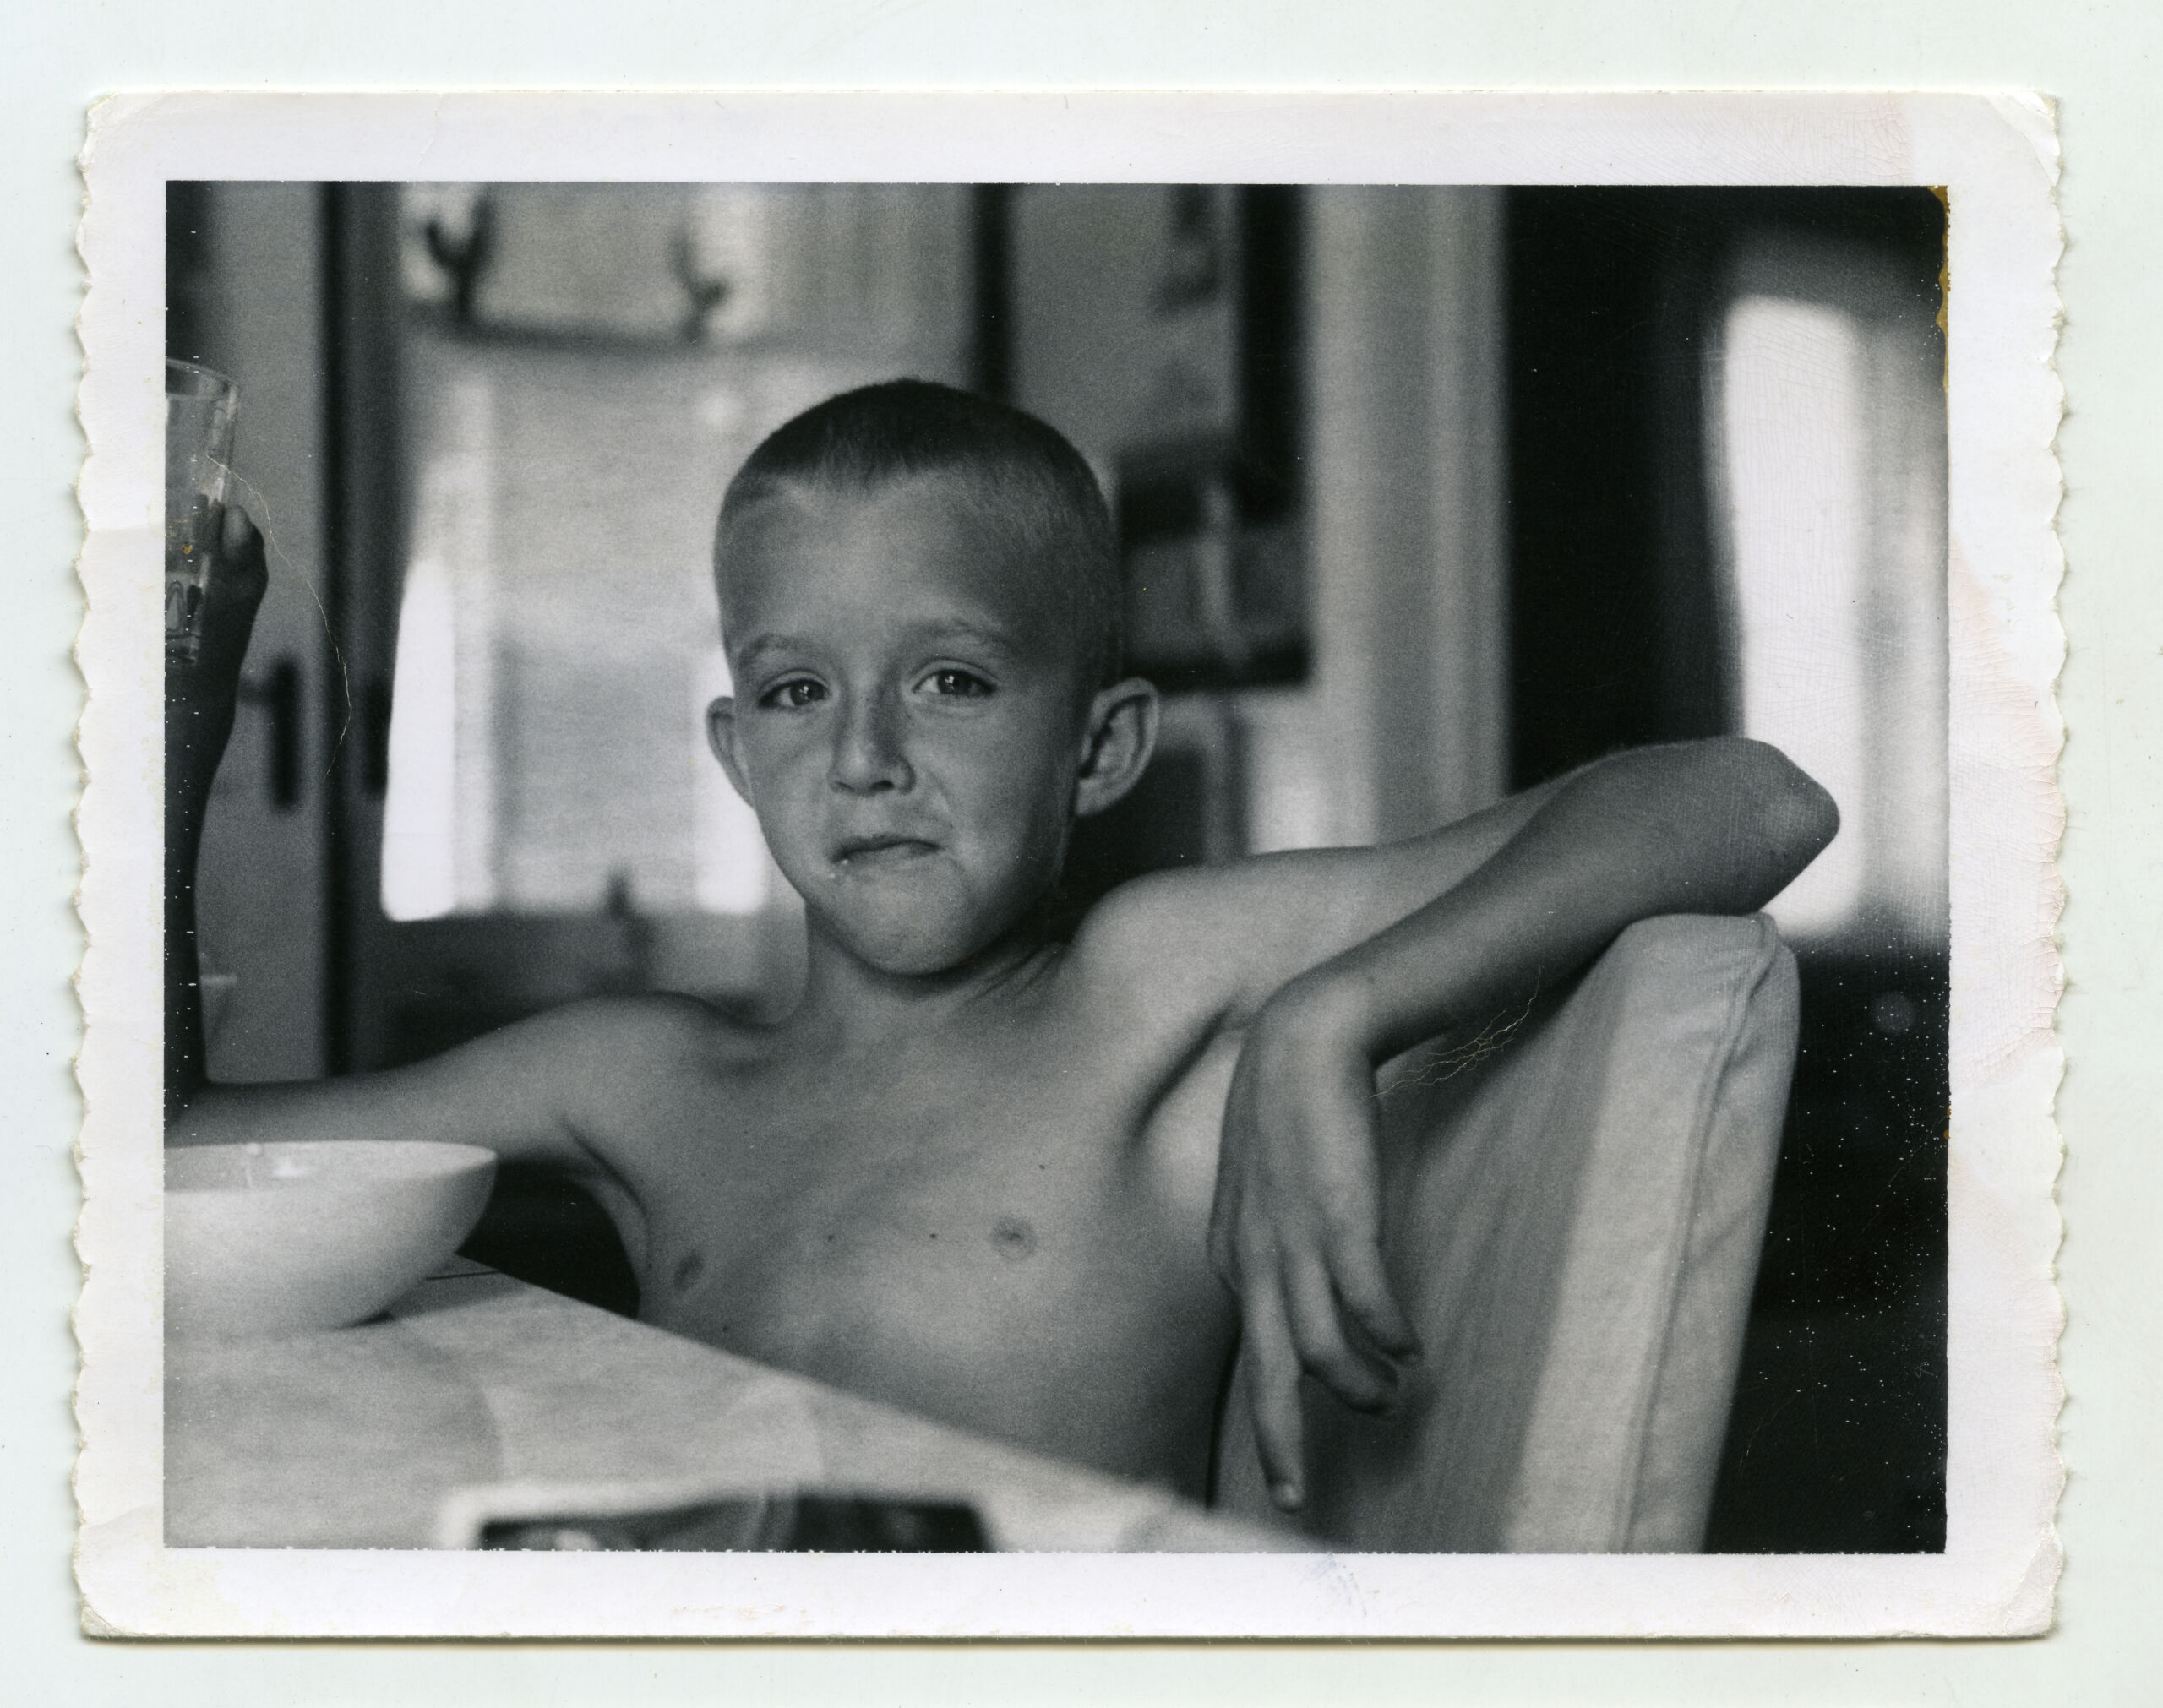 A black and white photo of a boy, perhaps 10, sitting without a shirt at a kithcen table. He smiles slightly without showing his teeh and holds a glass of water up in one hand and drapes the other arm over his chair back. A bowl is on table in front of him.